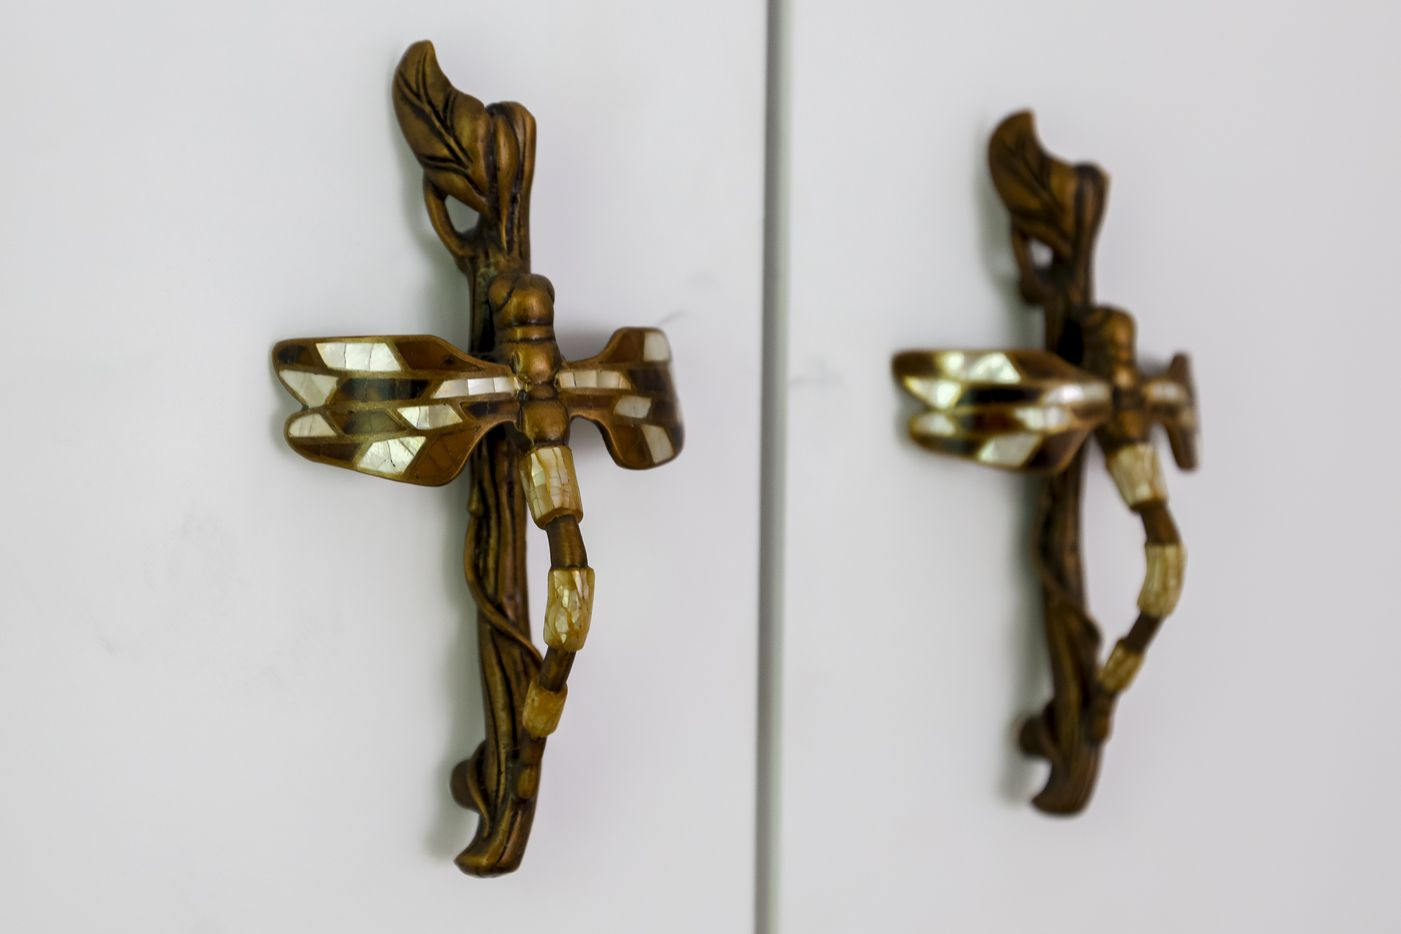 Cabinets in the master bedroom have dragonfly handles.